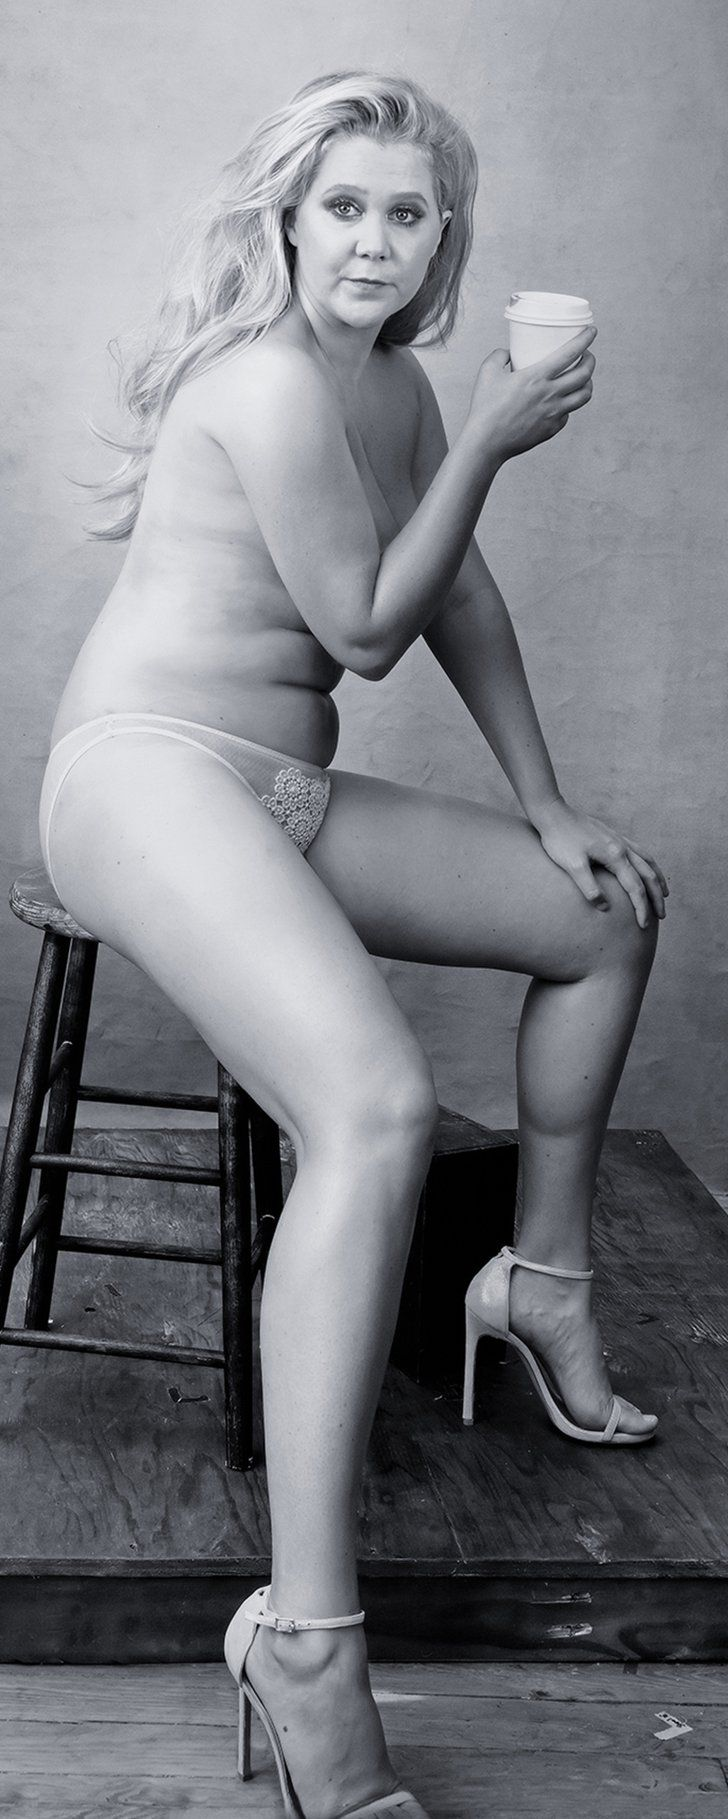 Pin for Later: We Need More Photos Like This Naked One of Amy Schumer in Our Lives